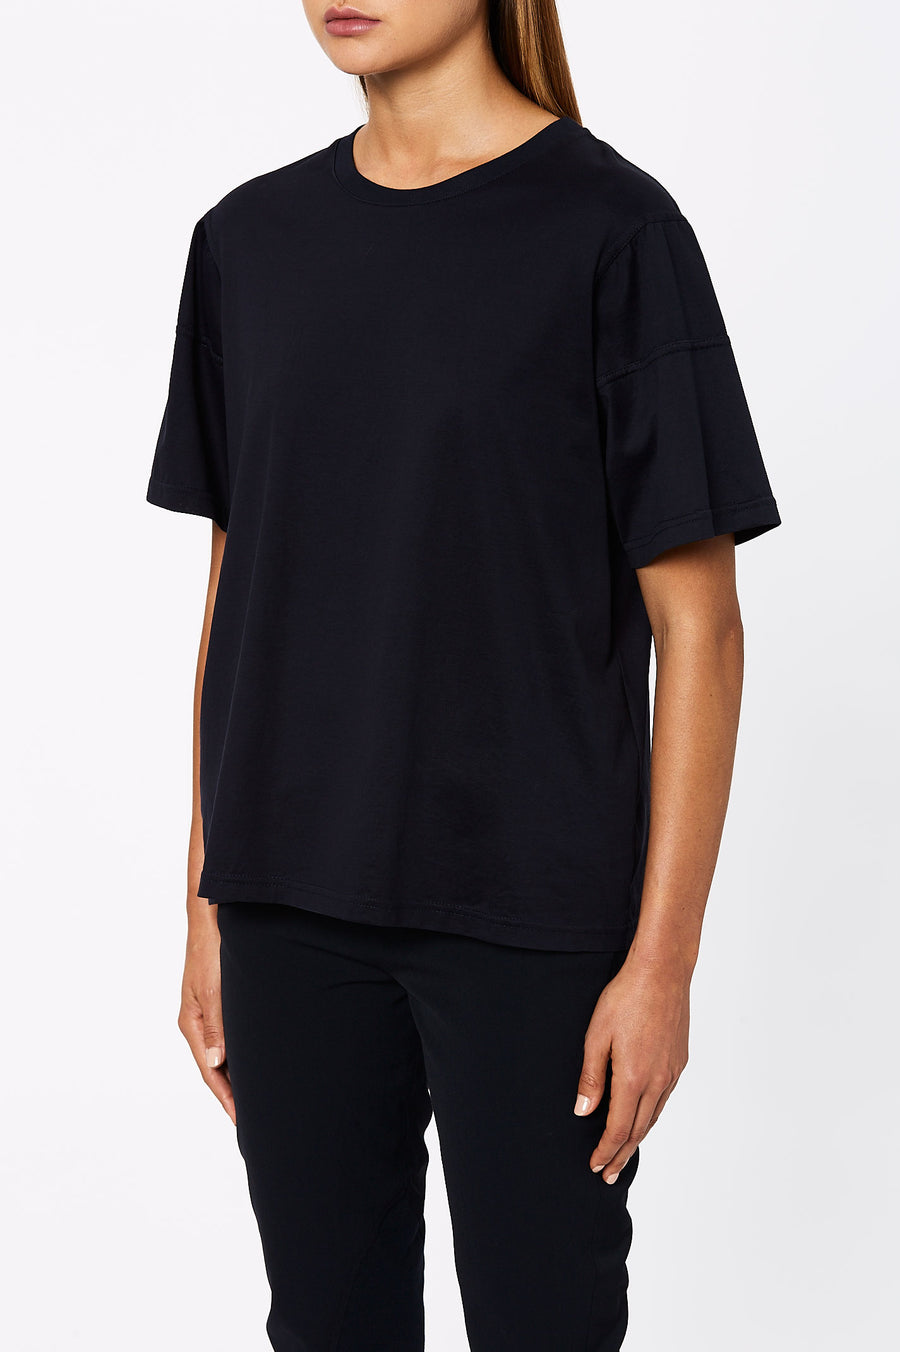 The Mercerised Loose Fit T-shirt is cut for an oversized fit and has a classic crew neckline